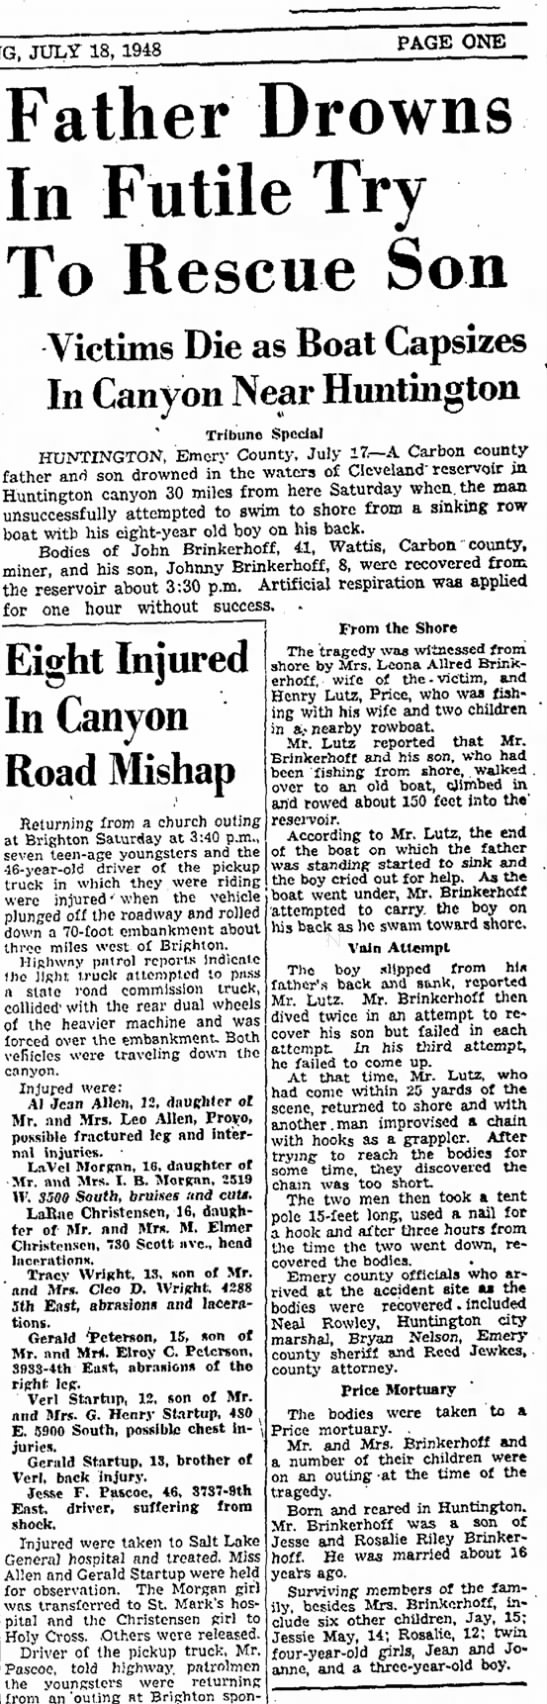 18 Jul 1948 Father Drowns in Futile Try to Rescue Son, -